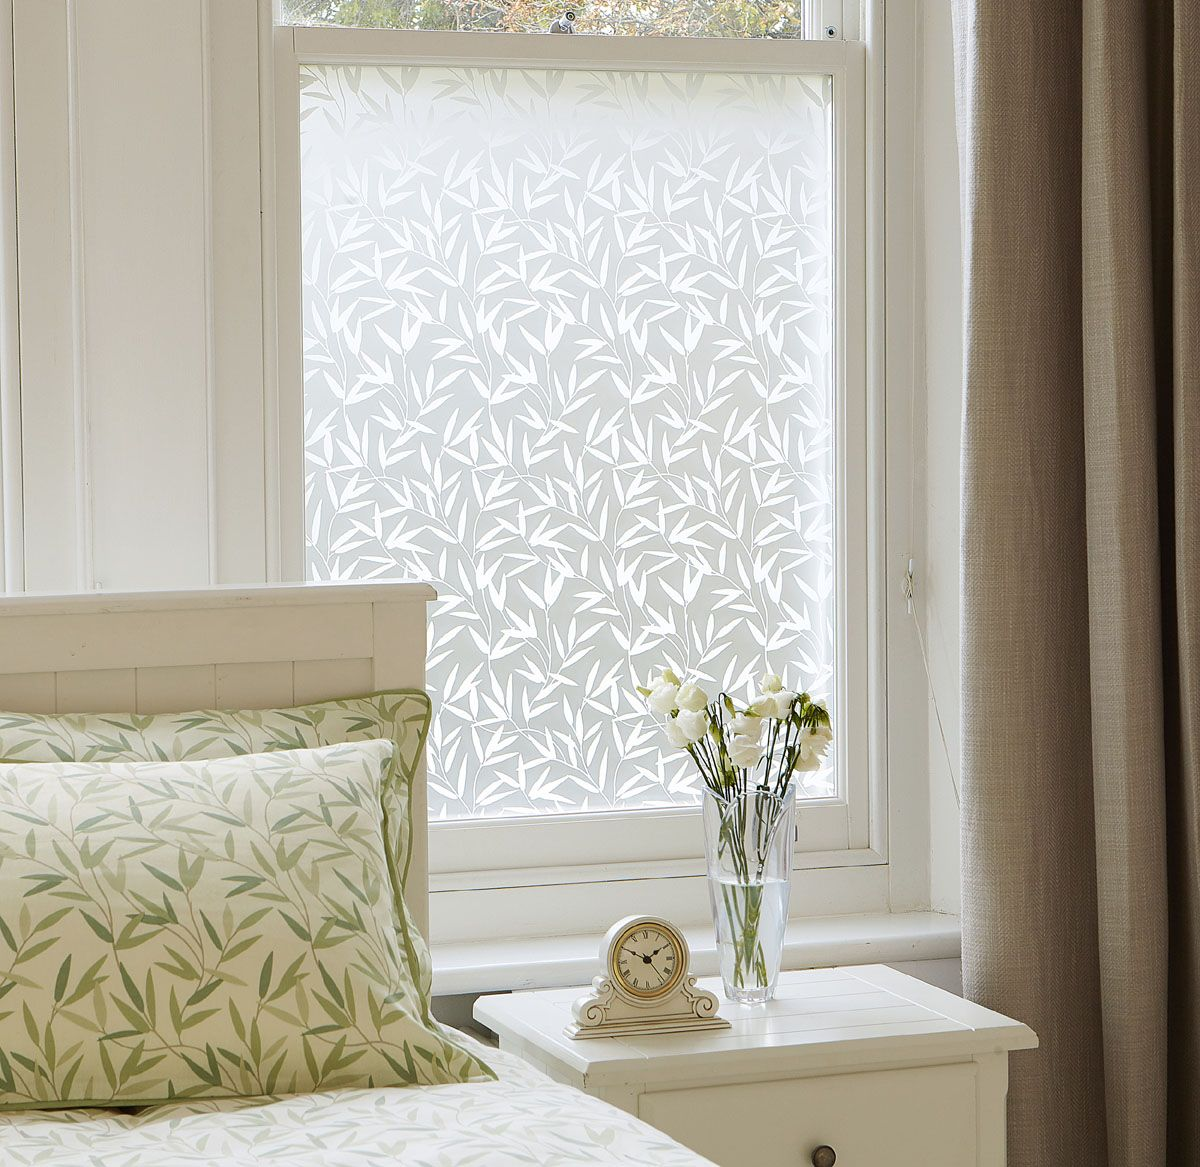 Vinilos Ventanas Vinilo Para Ventana Willow Leaf Laura Ashley Decoración